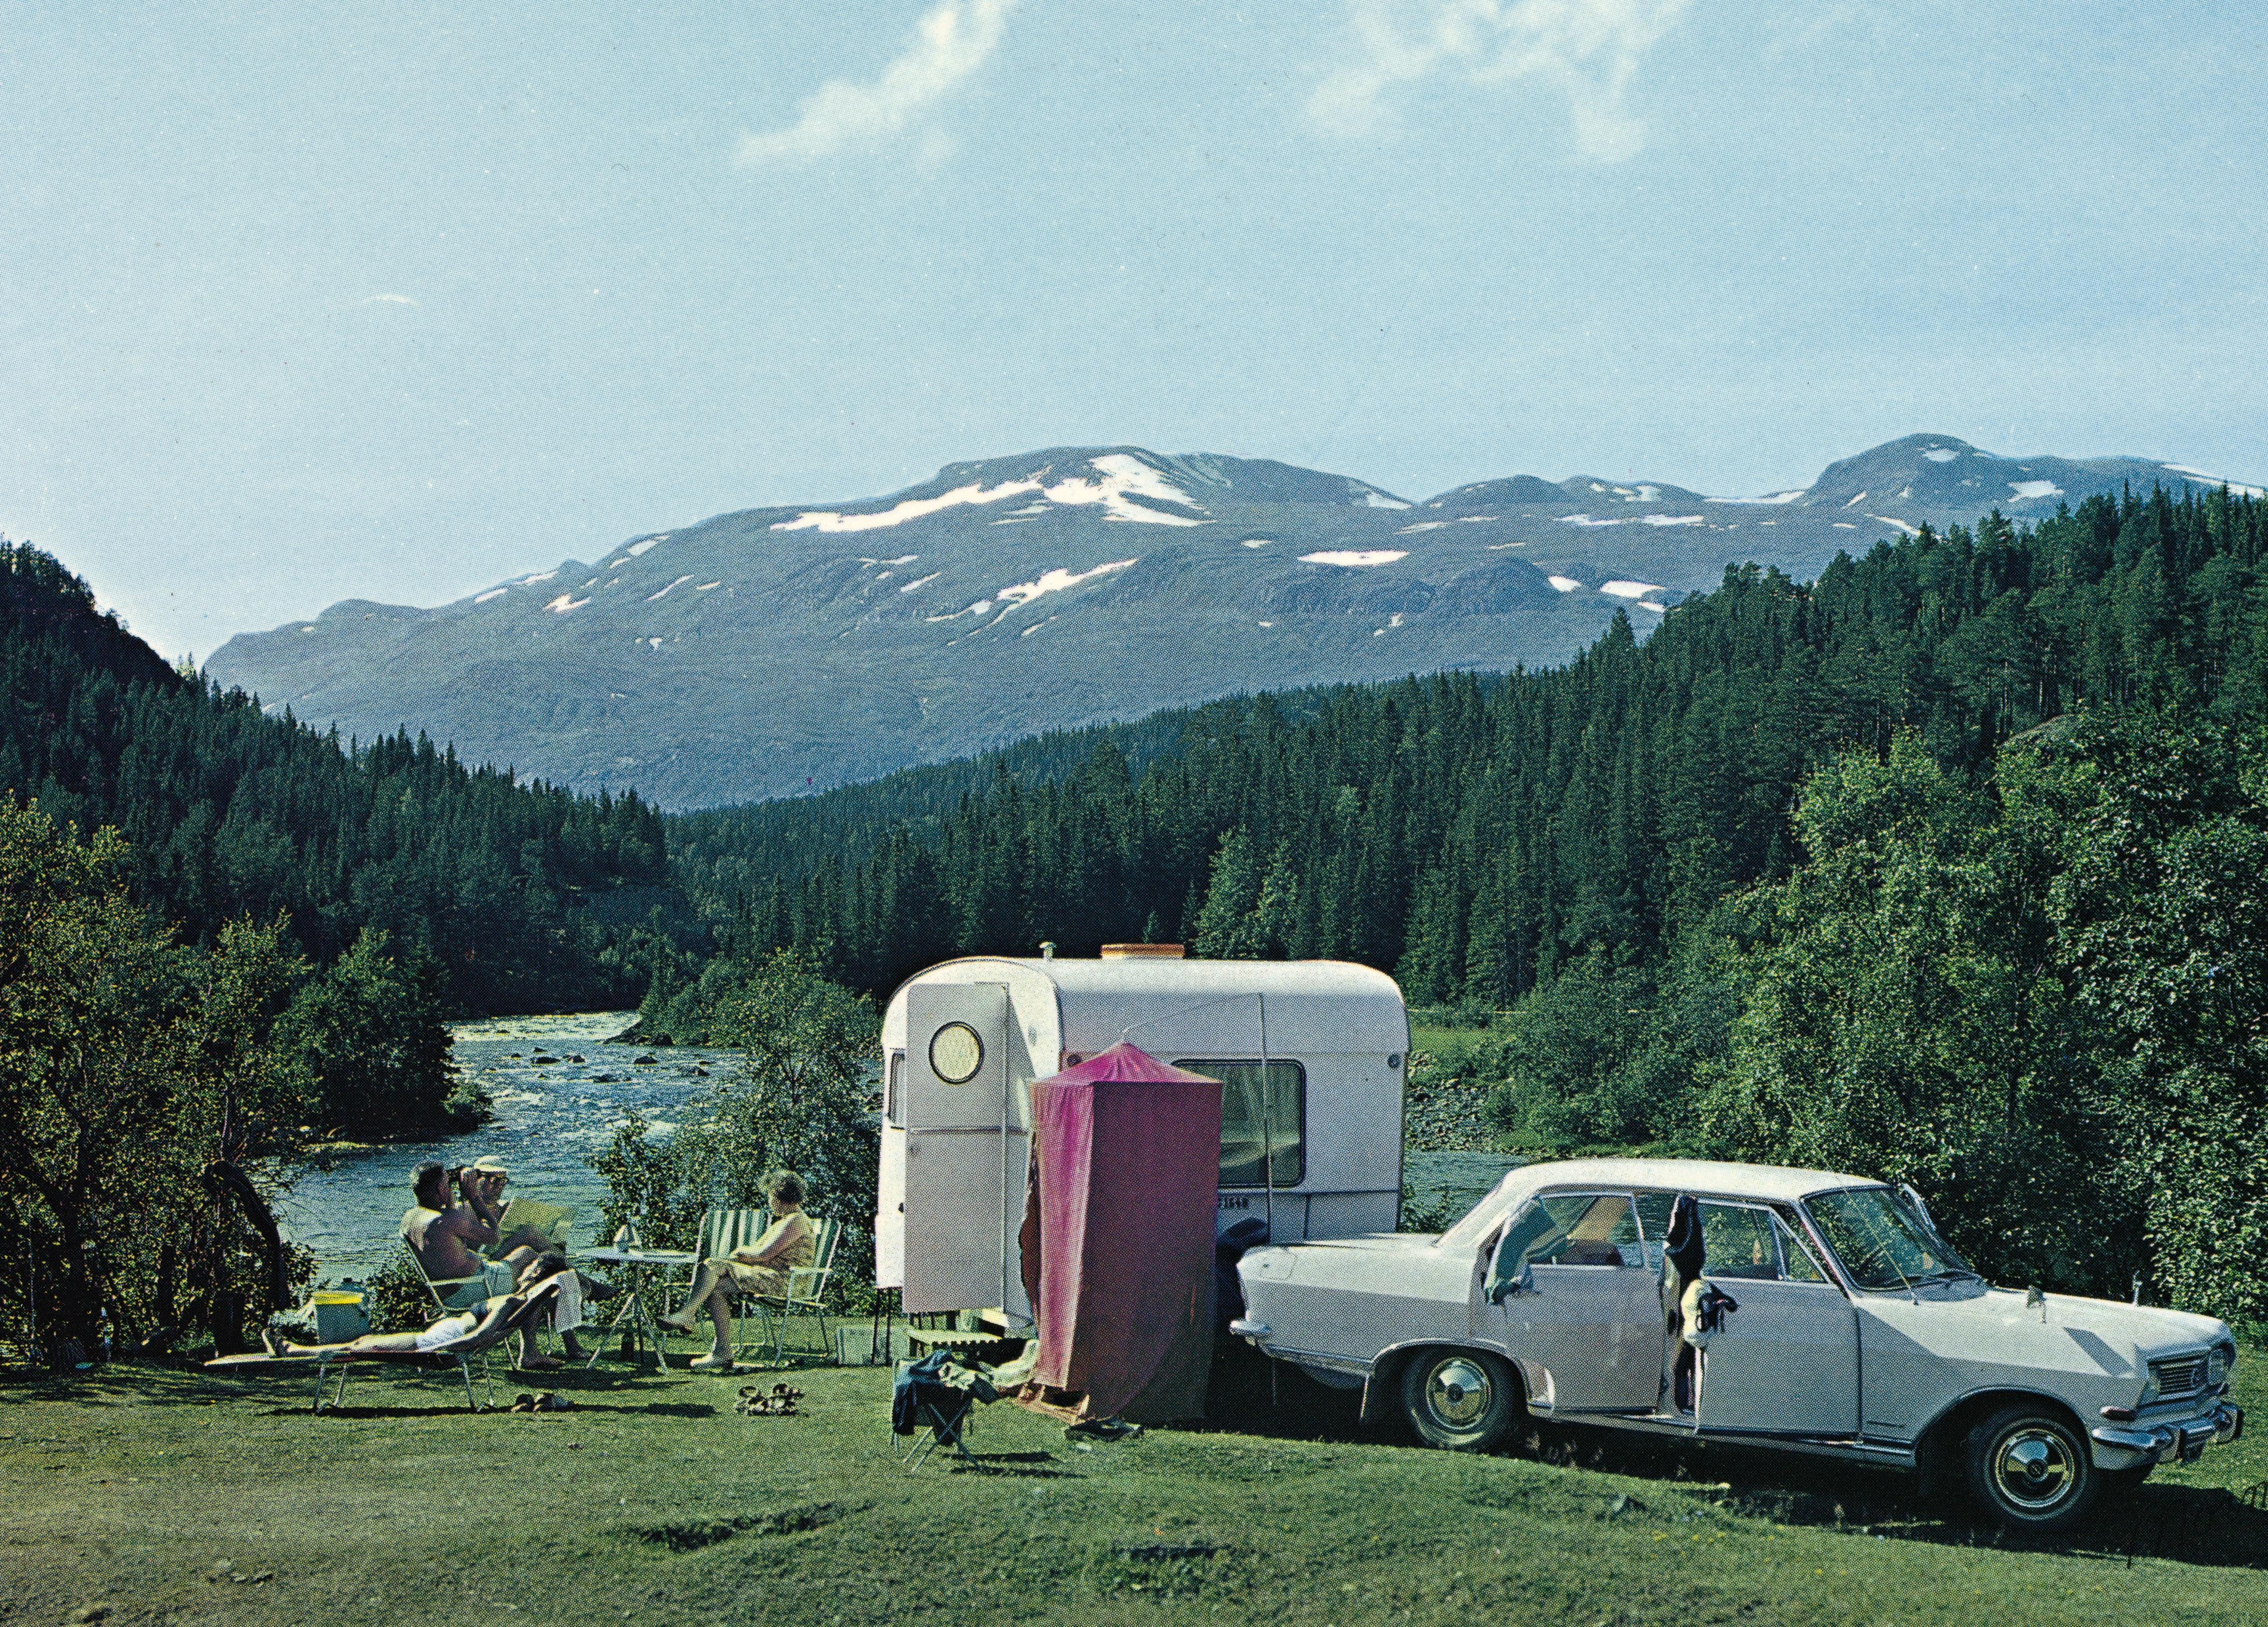 Camping pas cher, camping bord de mer, camping mer et soleil, camping familial, location mobil home